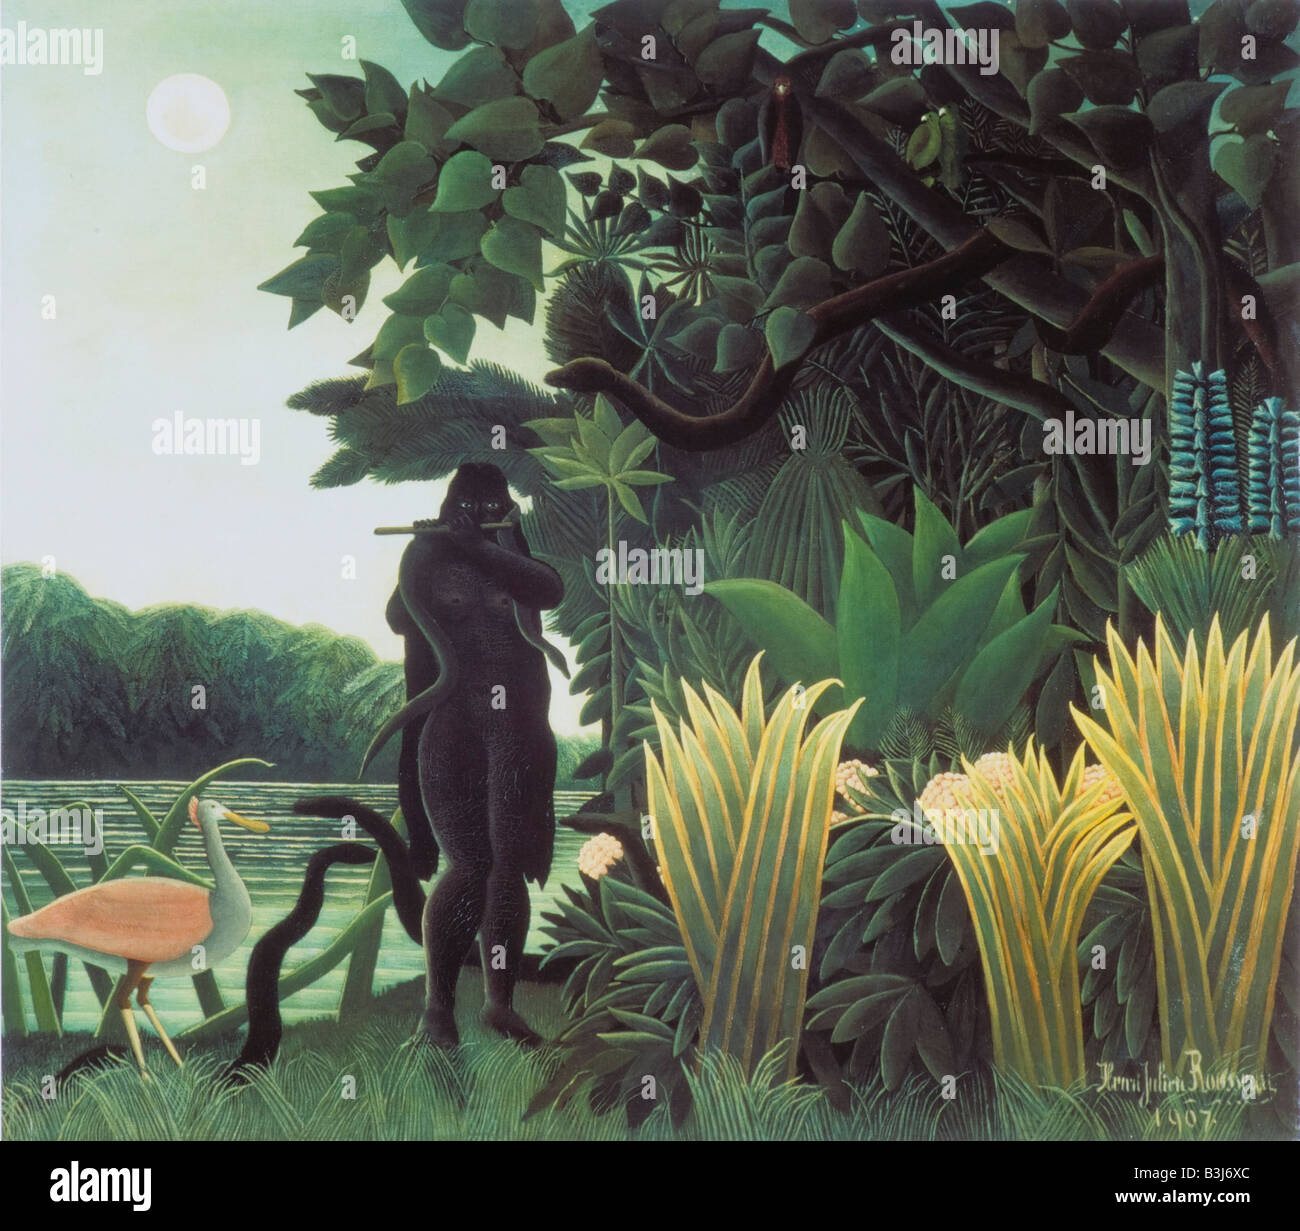 The Snake Charmer by Henri Rousseau 1907 - Stock Image